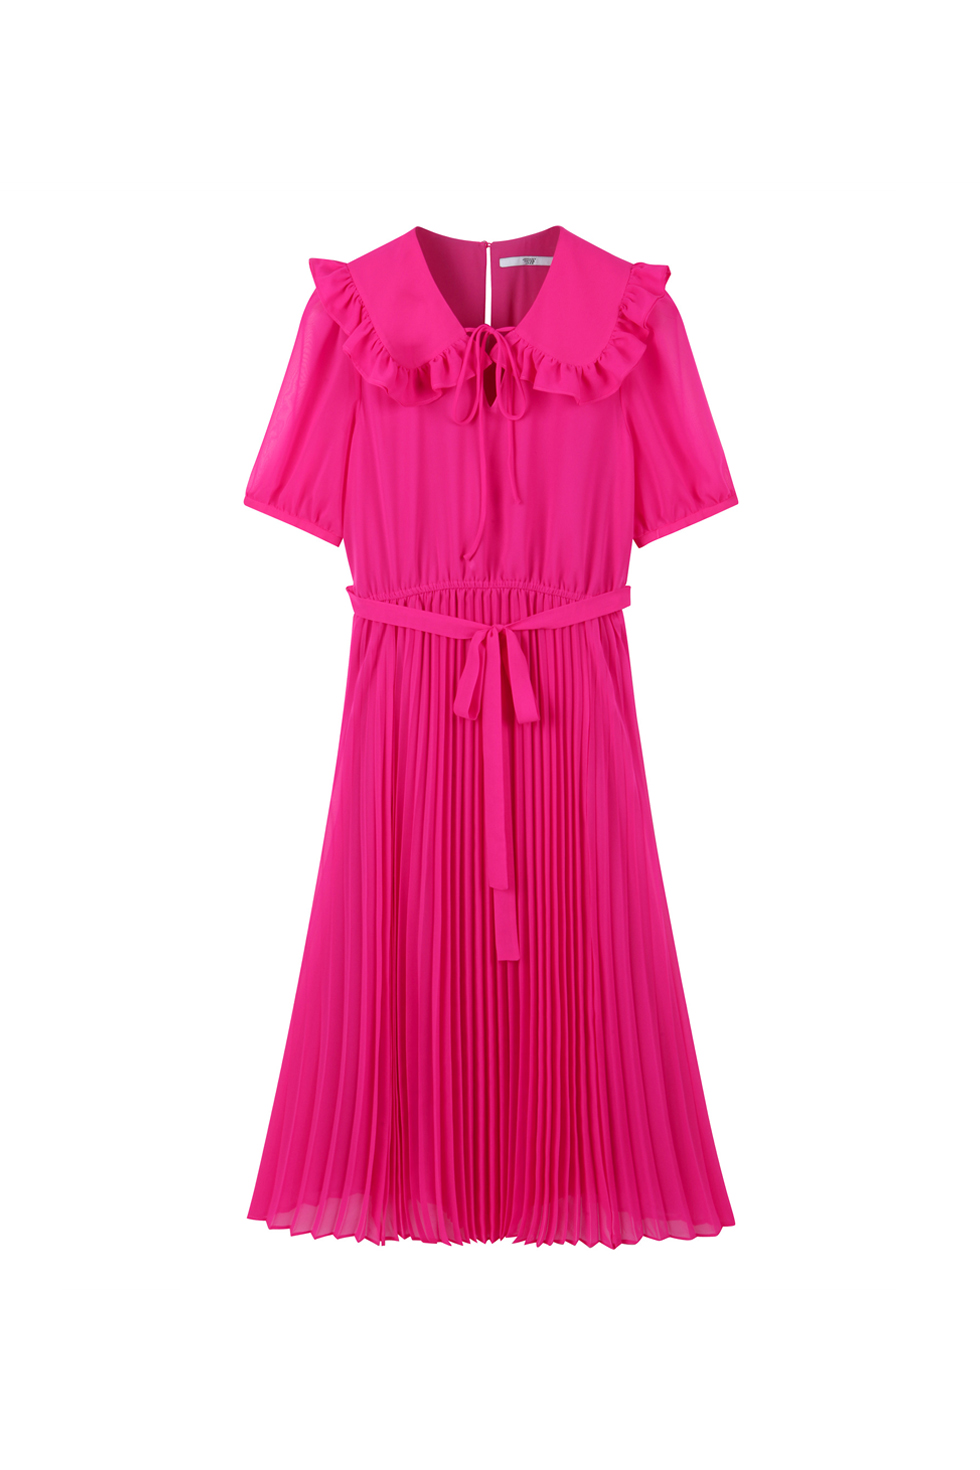 RUFFLE PLEATS DRESS - PINK